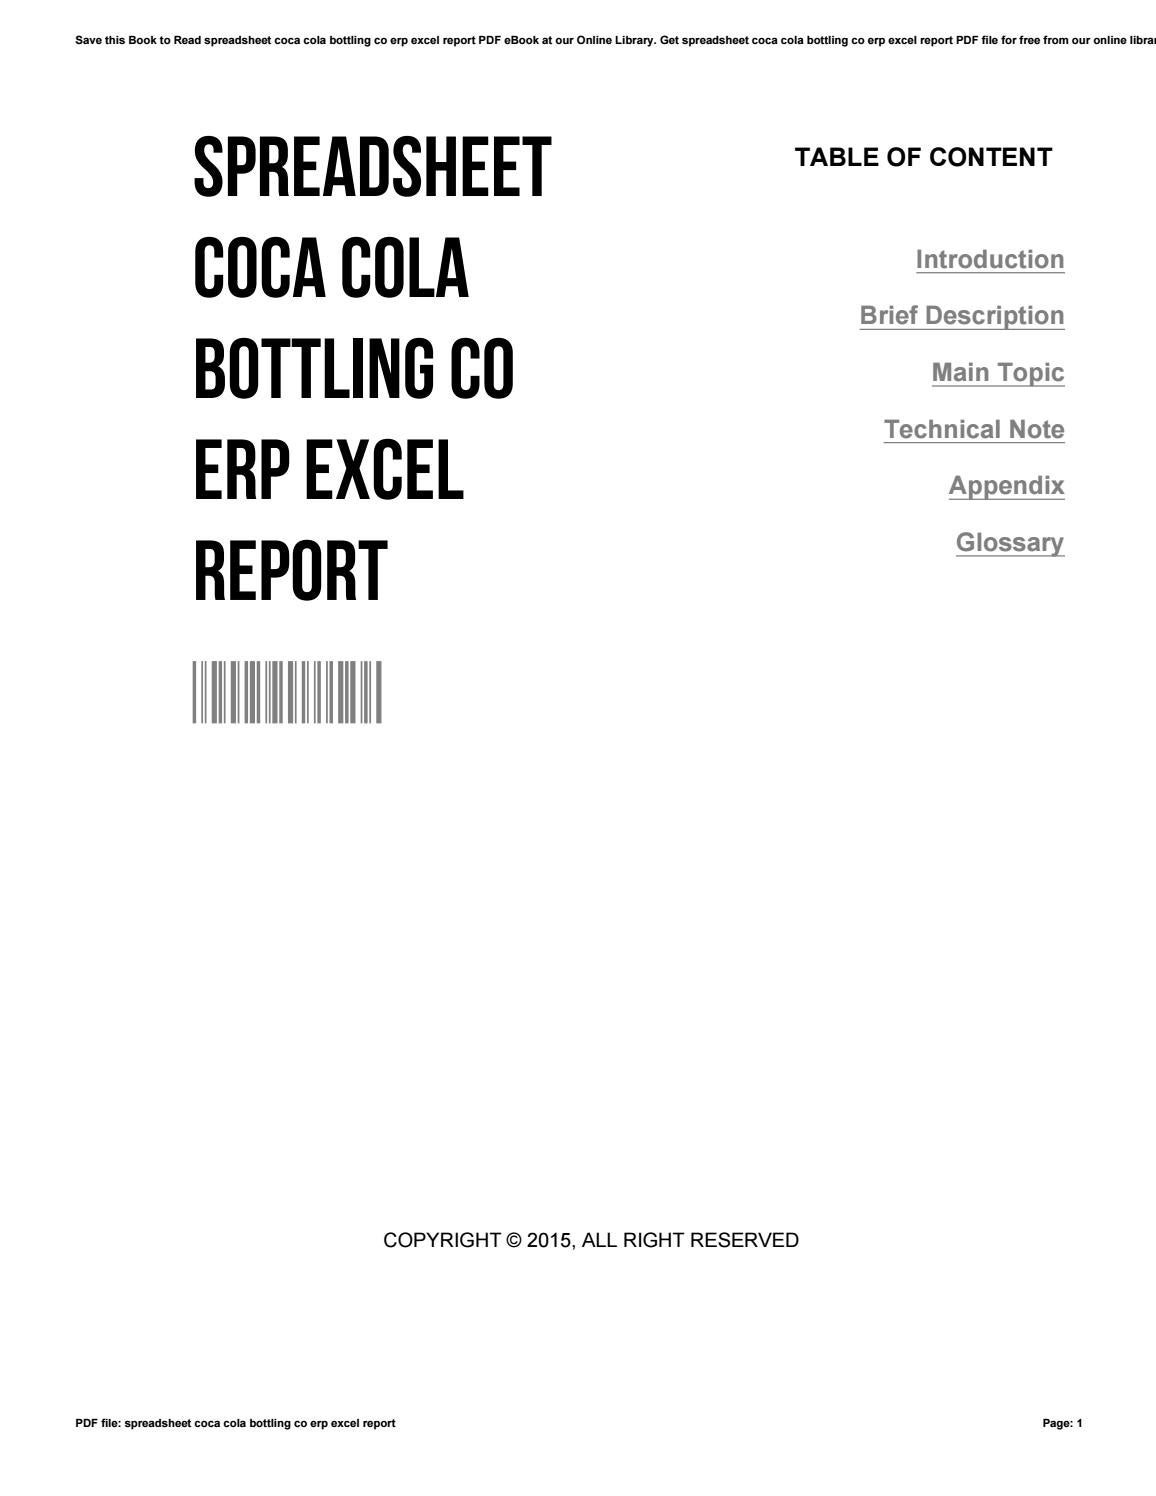 Erp Libra Spreadsheet Coca Cola Bottling Co Erp Excel Report By 117470 Issuu